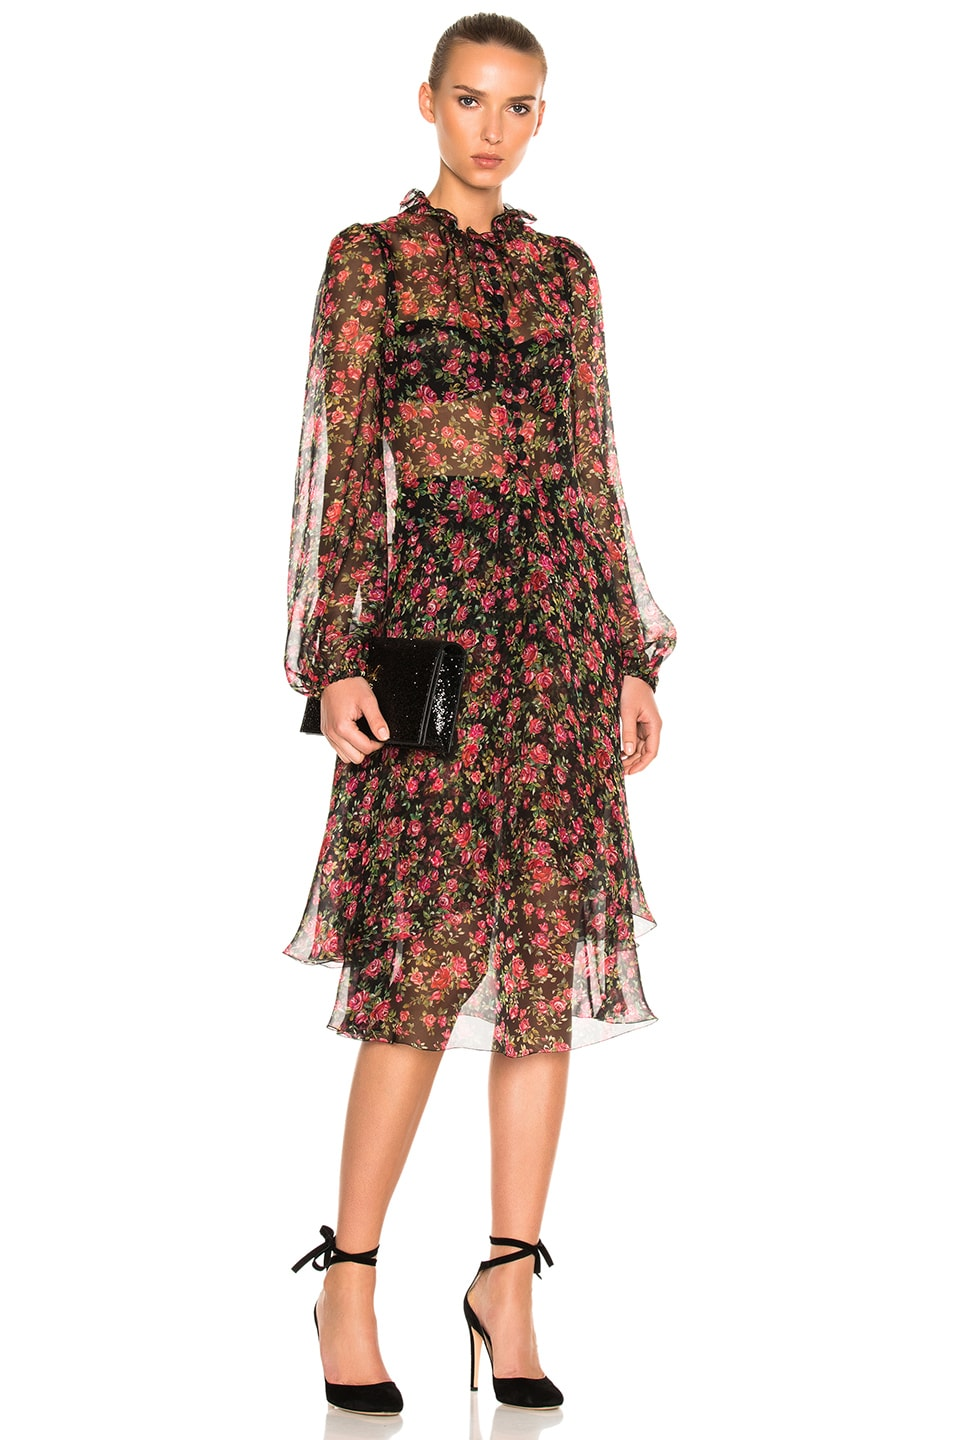 Dolce & Gabbana Sheer Floral Long Sleeve Dress in Black,Floral,Red